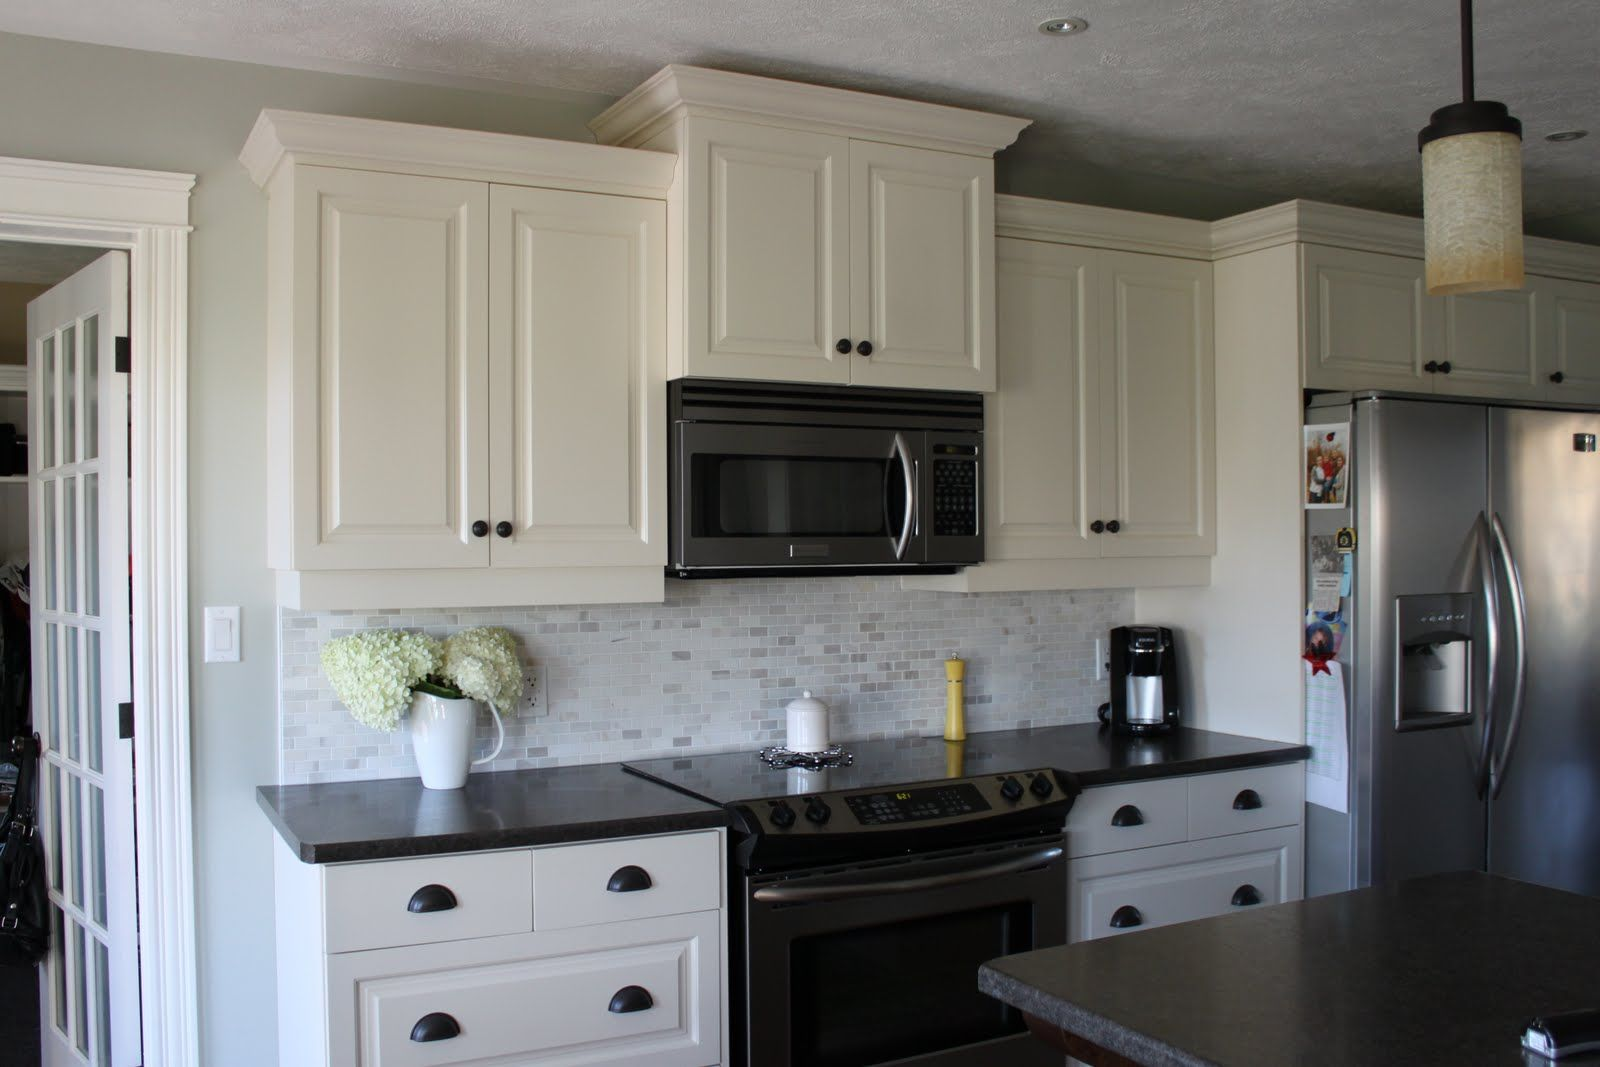 White Cabinets With Gray Backsplash Kitchen Ideas